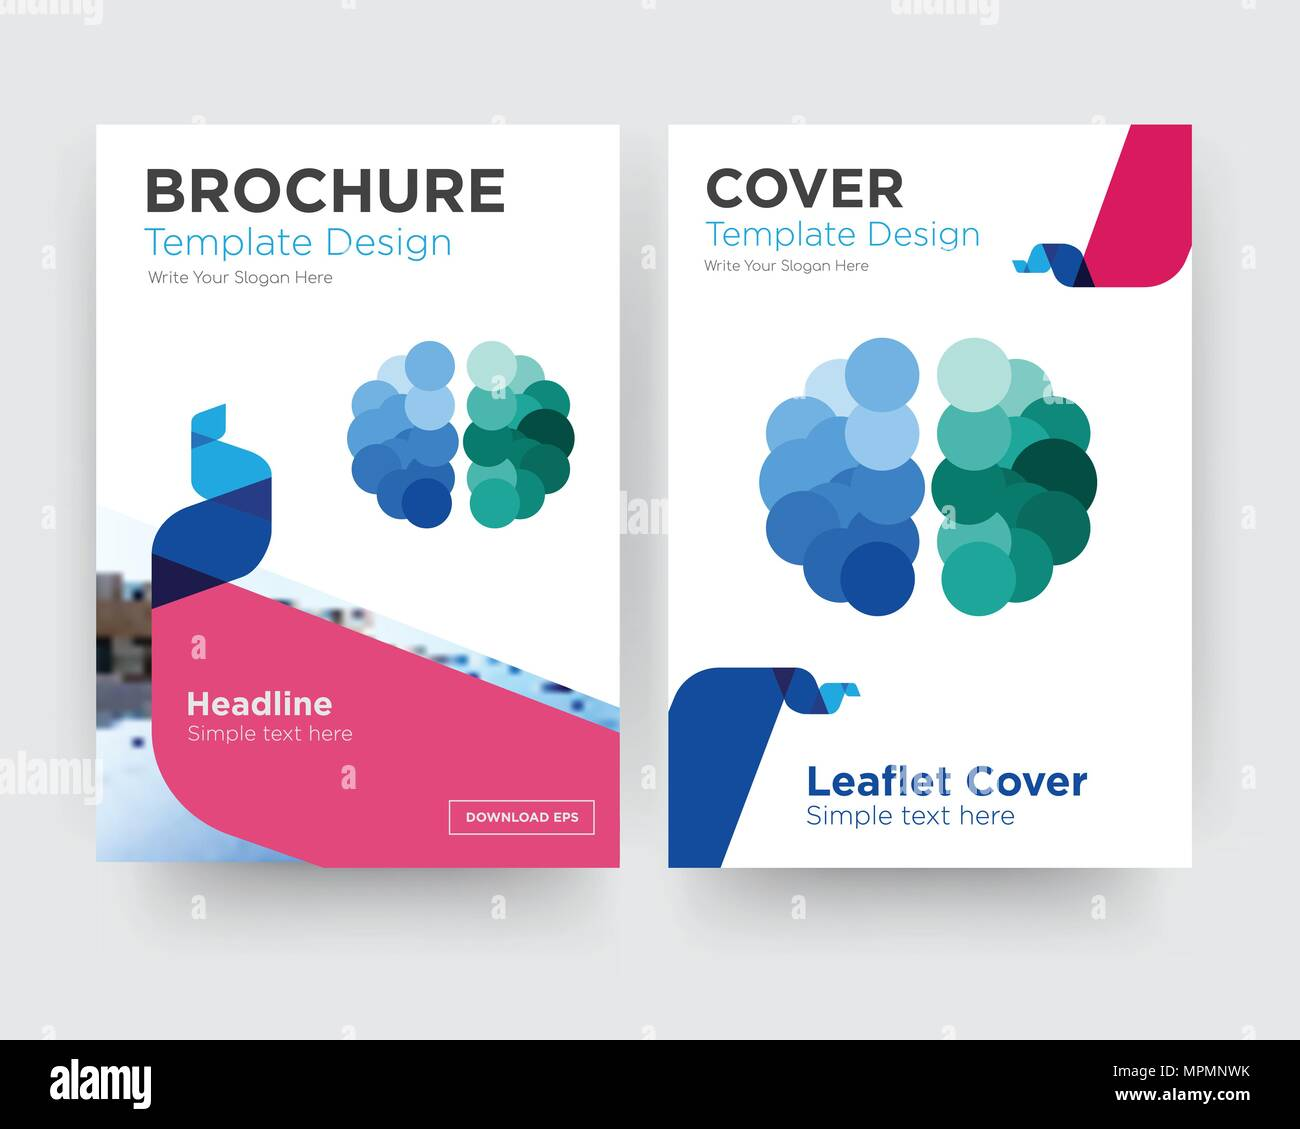 free brain brochure flyer design template with abstract photo